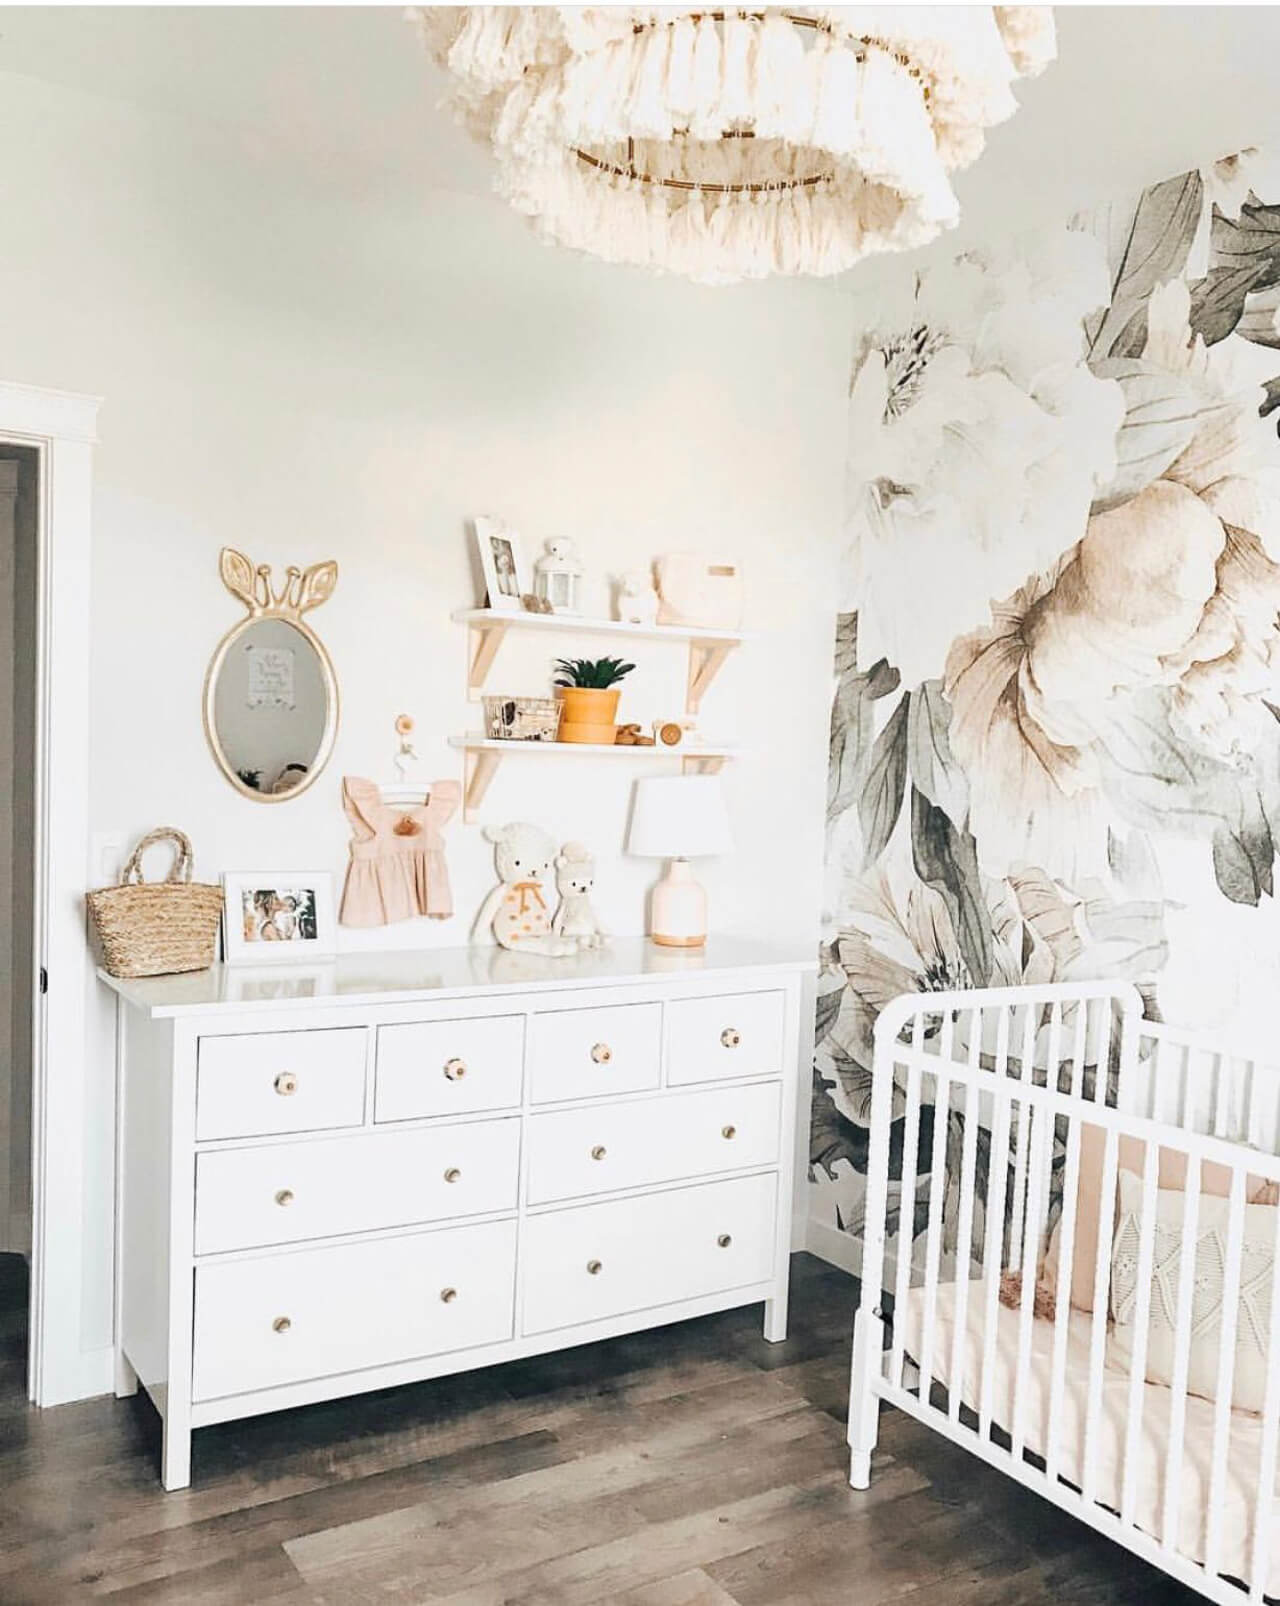 Baby Girl Nursery Decor Pretty baby girl nursery decor! - M Loves M @marmar